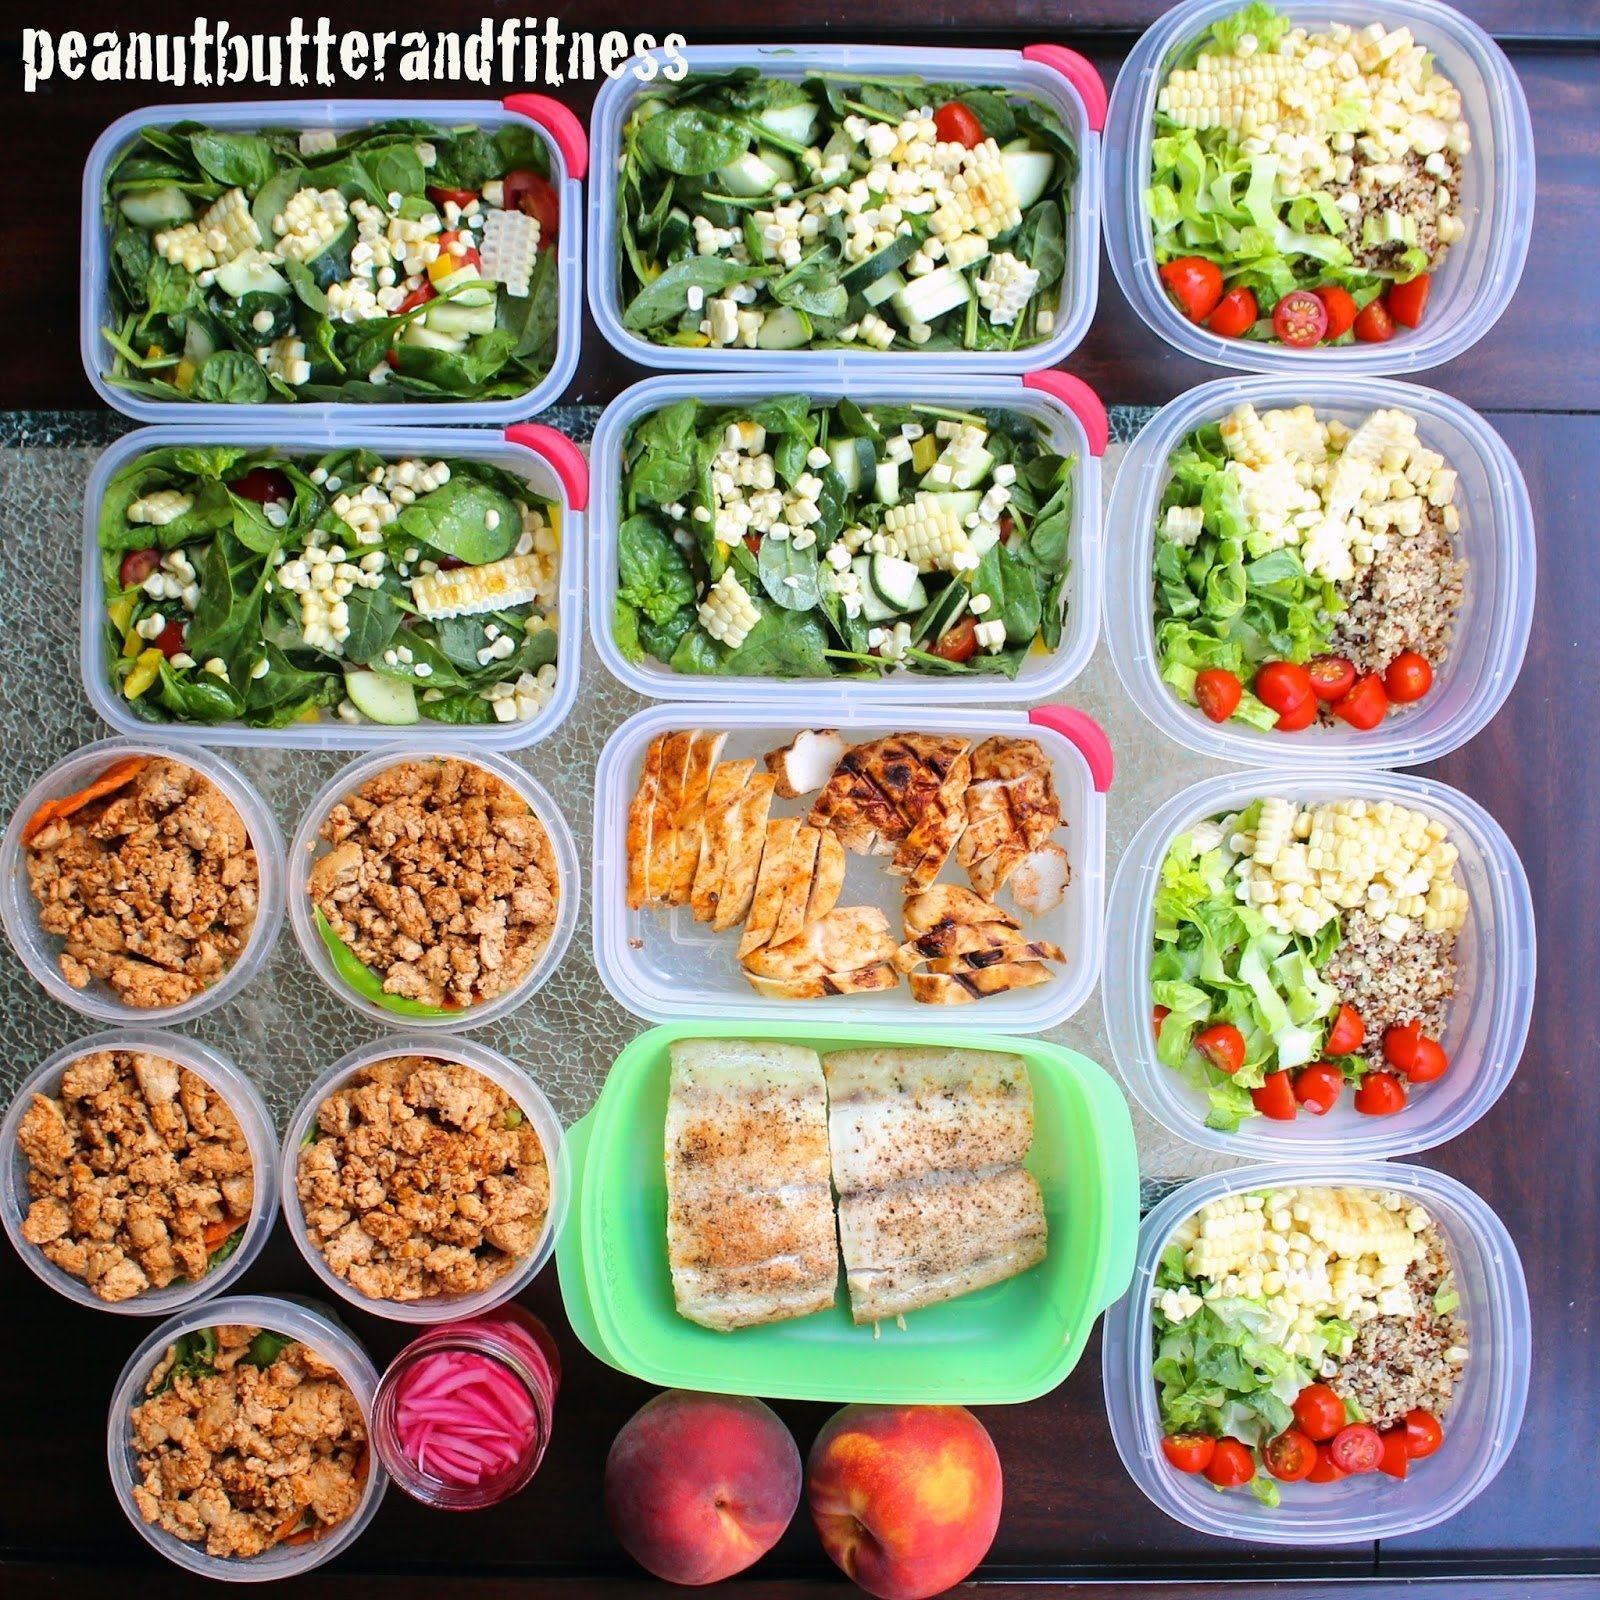 10 Unique Meal Ideas For The Week meal prep ideas week of september 7th peanut butter and fitness